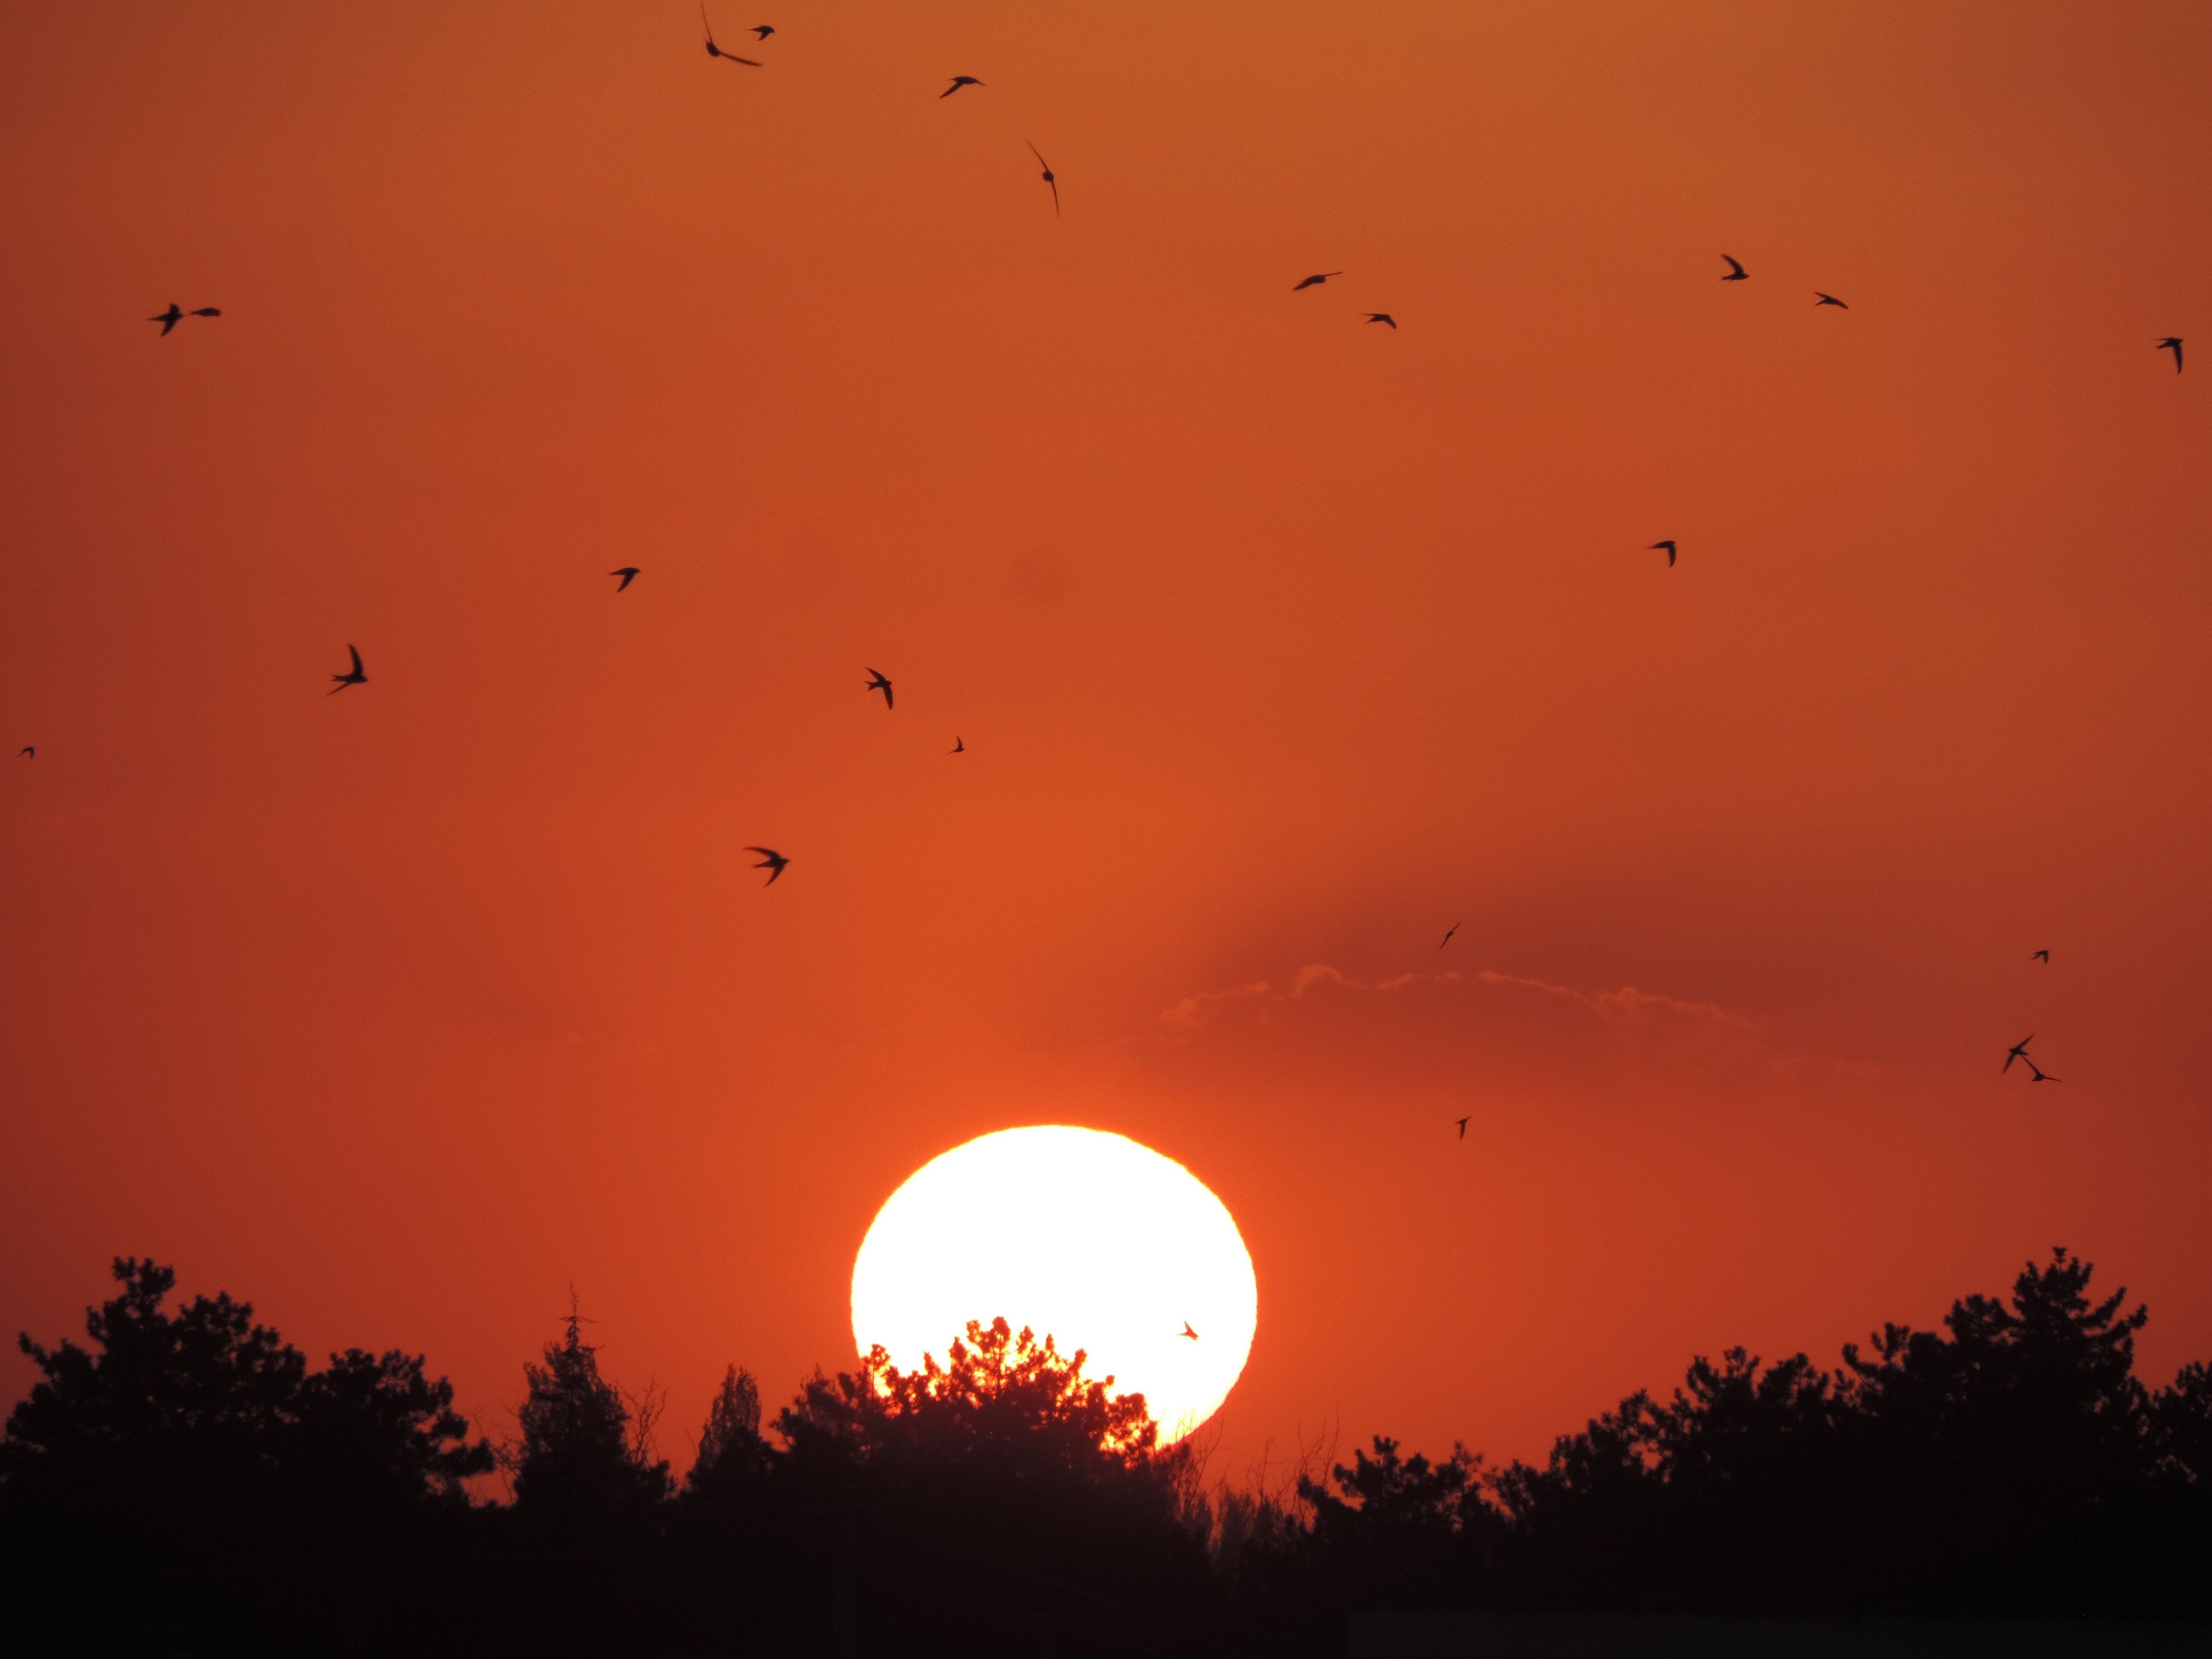 sunset, silhouette, bird, flying, orange color, low angle view, animal themes, animals in the wild, wildlife, tree, sky, sun, beauty in nature, scenics, nature, flock of birds, tranquility, tranquil scene, idyllic